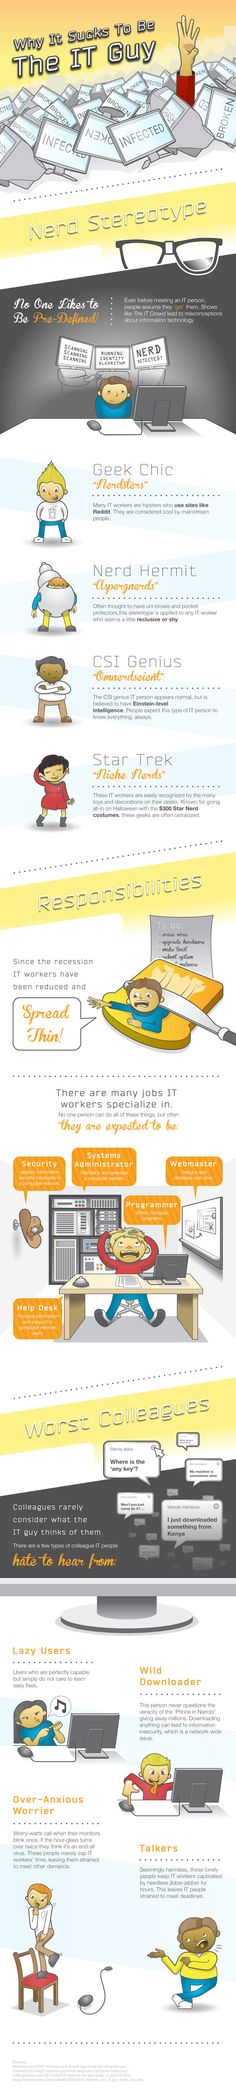 Why You Should Be Nice To Your IT Guy Today [Infographic]